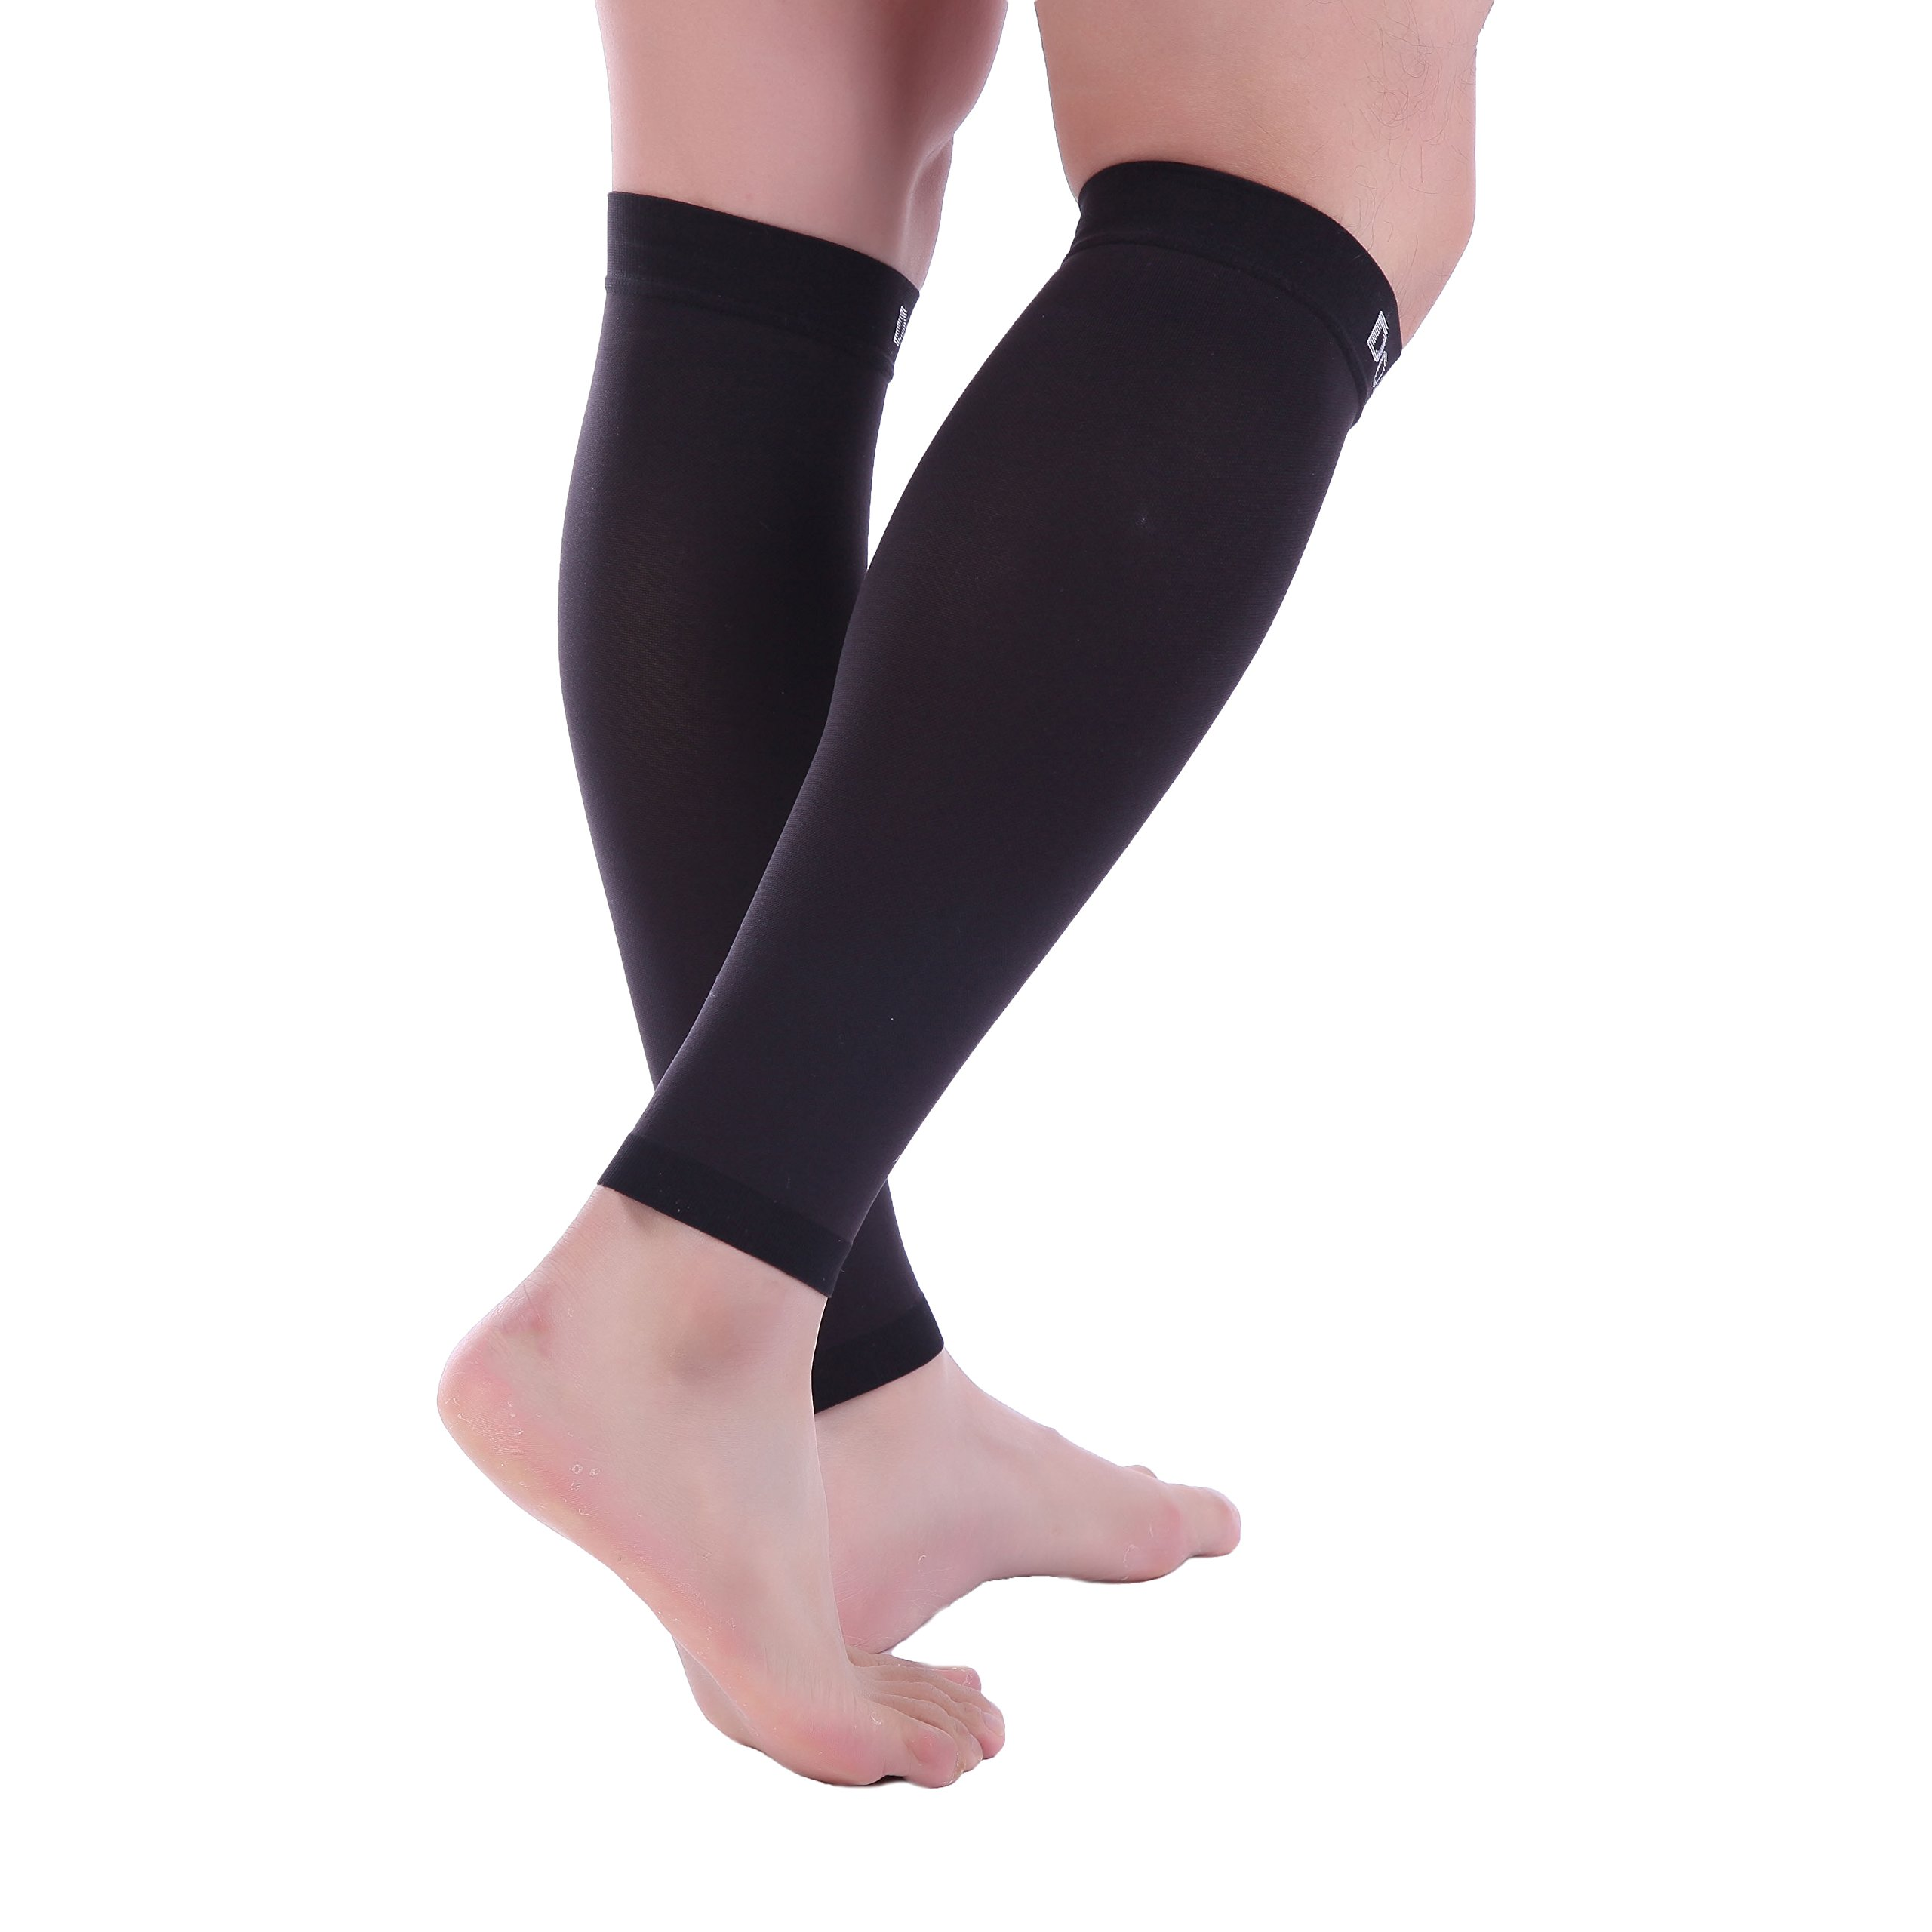 Doc Miller Premium Calf Compression Sleeve 1 Pair 20-30mmHg Strong Calf Support Graduated Pressure for Sports Running Muscle Recovery Shin Splints Varicose Veins (Black, 2-Pack, Small) by Doc Miller (Image #7)